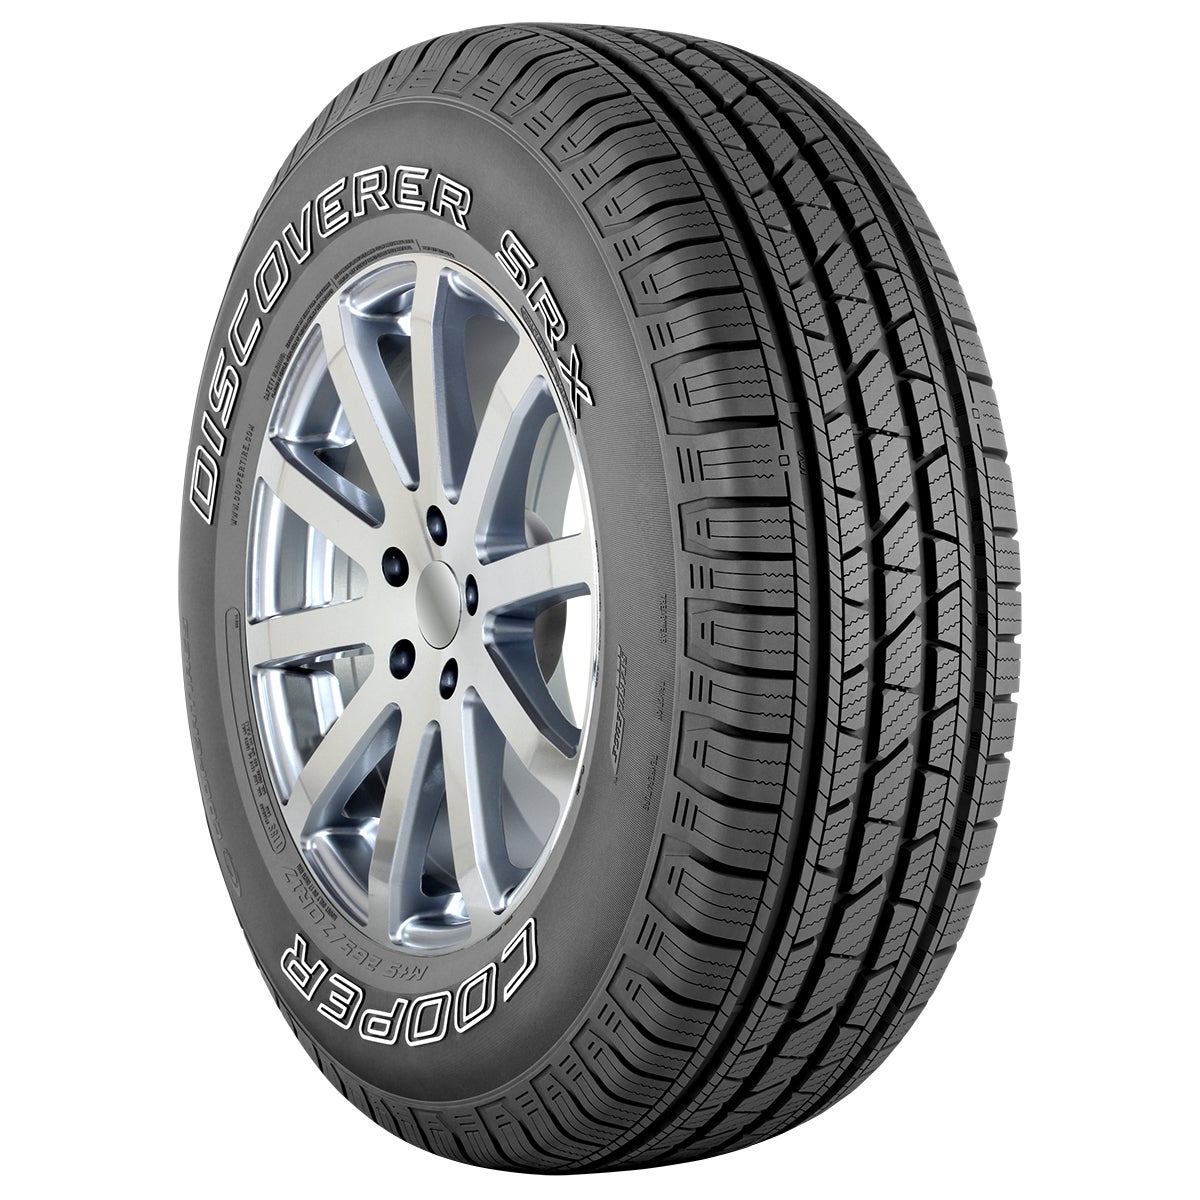 COOPER Discoverer SRX All Season Tire - 255/65R17 110T (B...